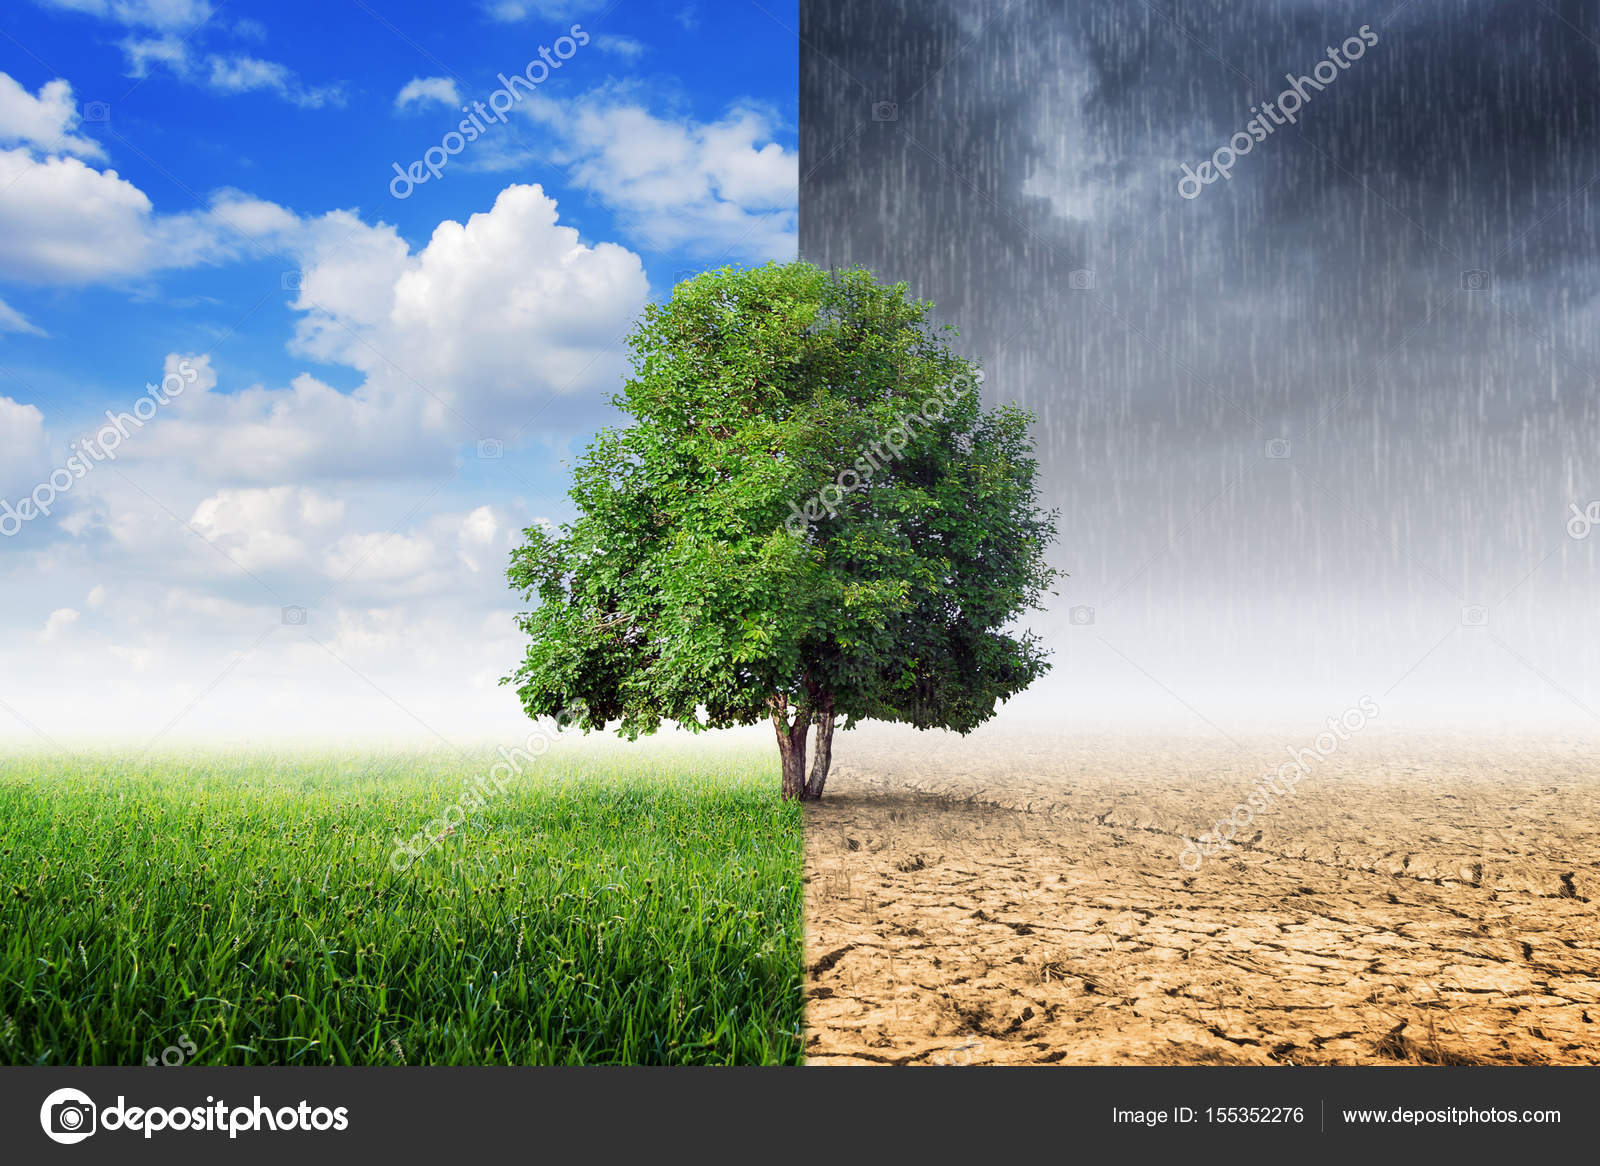 tree in the middle of four quadrants showing different climate changes